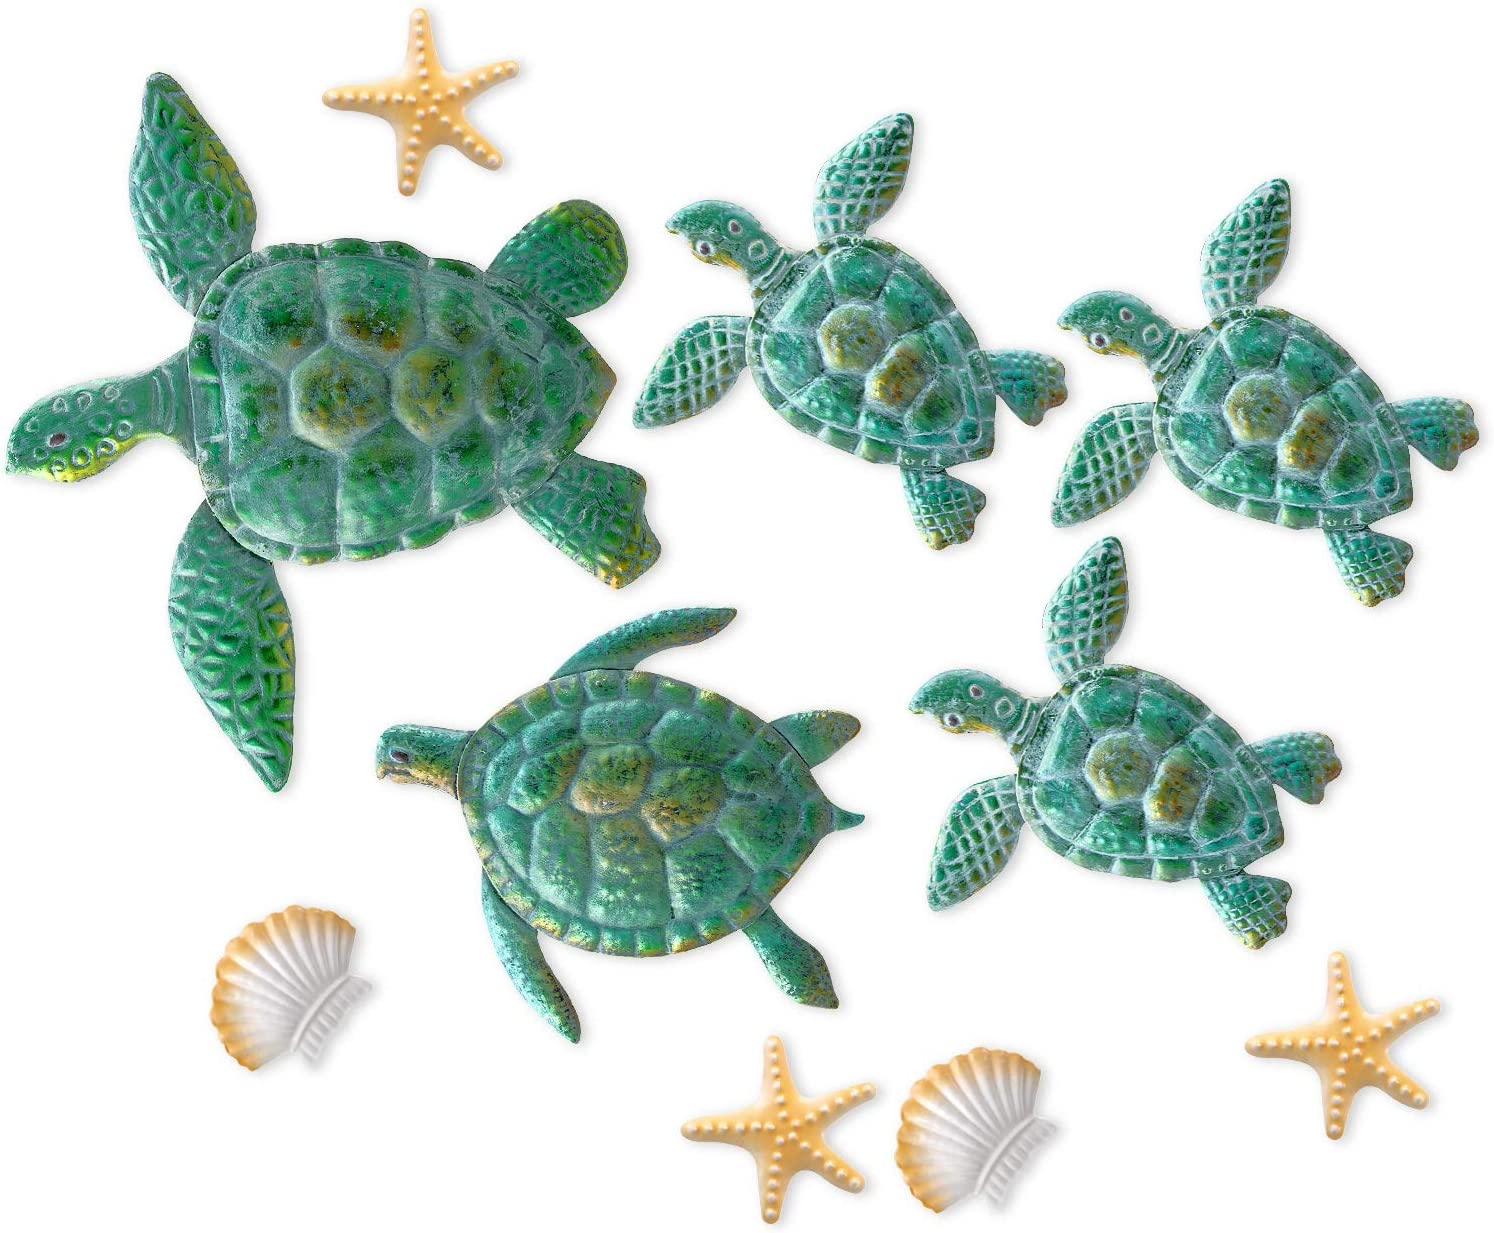 10 Pieces Sea Turtle Wall Decoration Starfish Ornaments Shell Wall Ornaments for Indoor Outdoor Garden Wall Sculptures